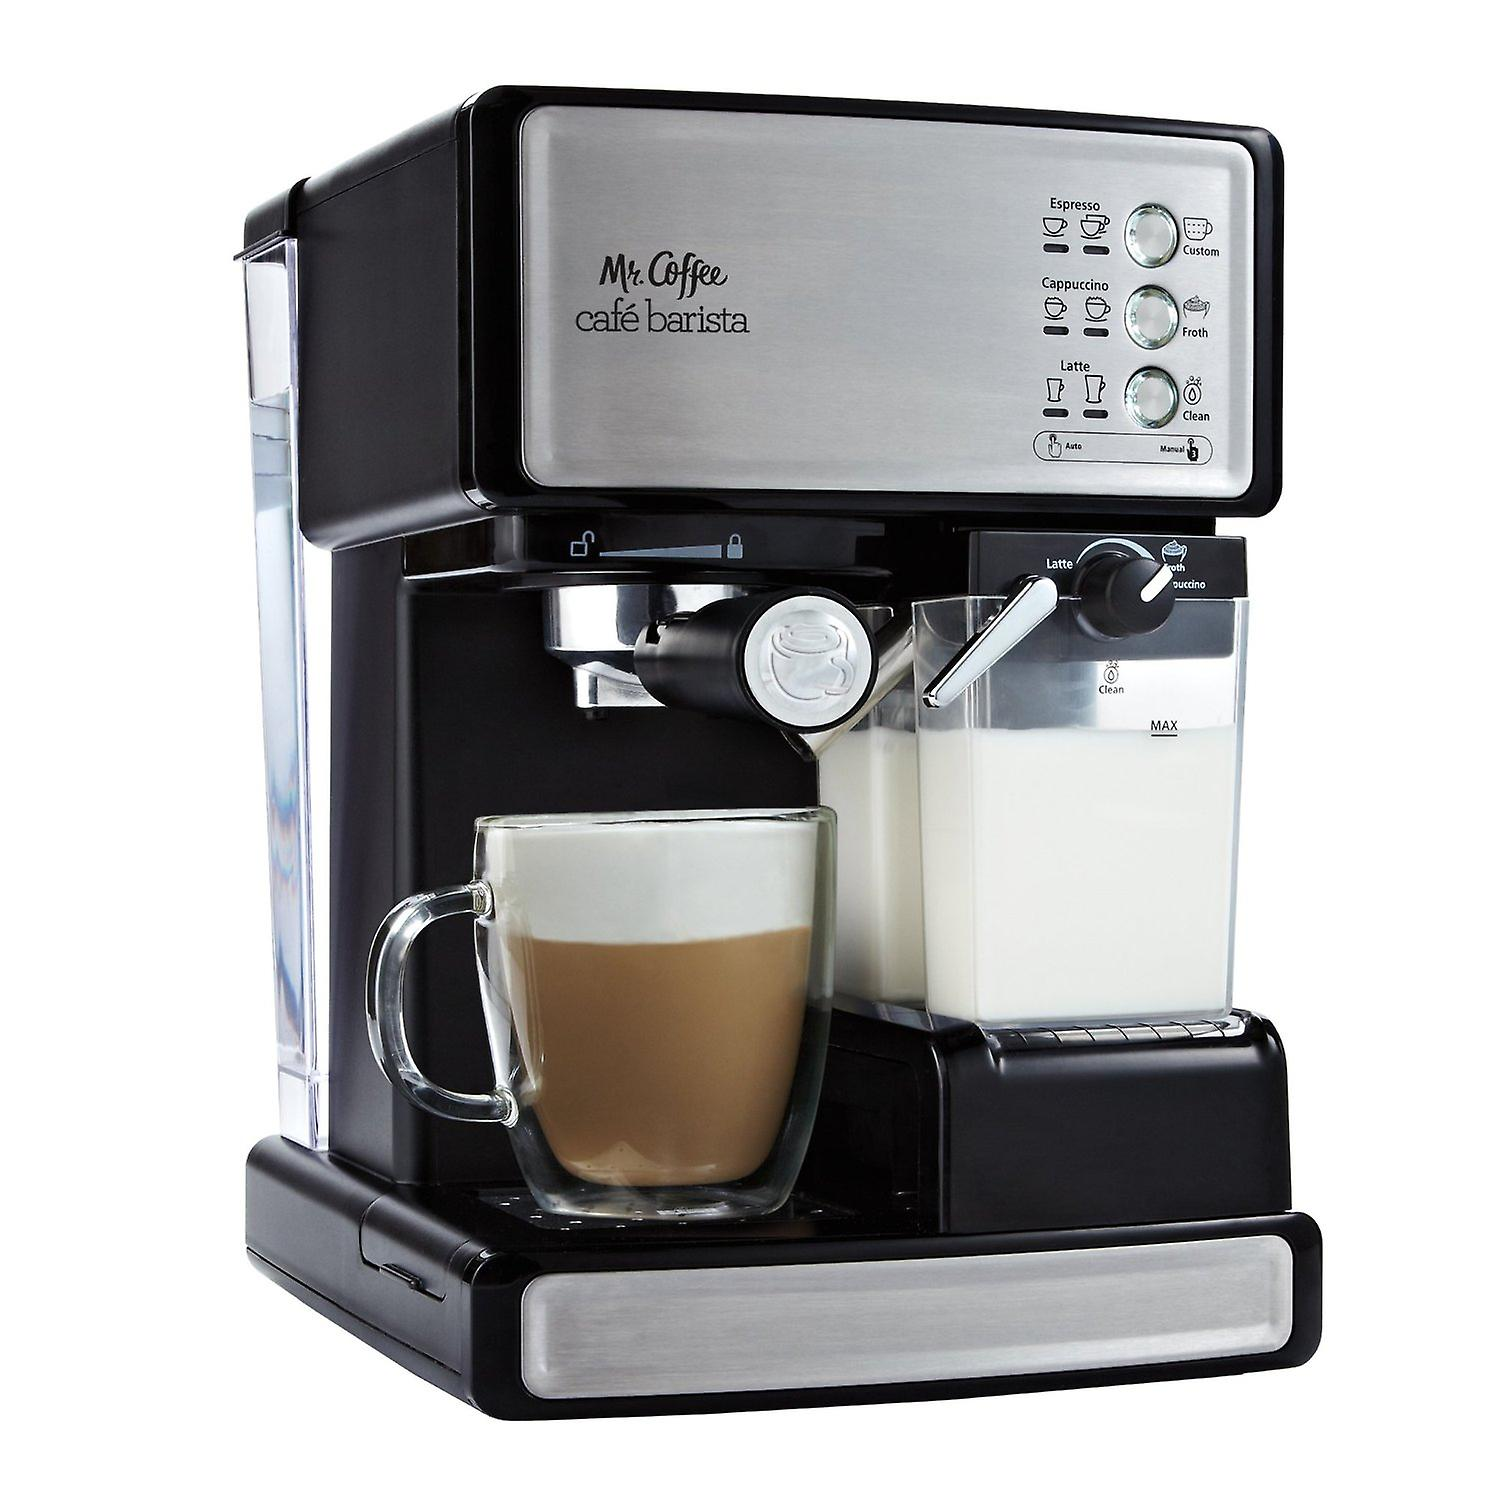 Descaling Tablets for Coffee Machine - 4 Tablets Per Box - Removes Limescale in Coffee Machines Effectively!